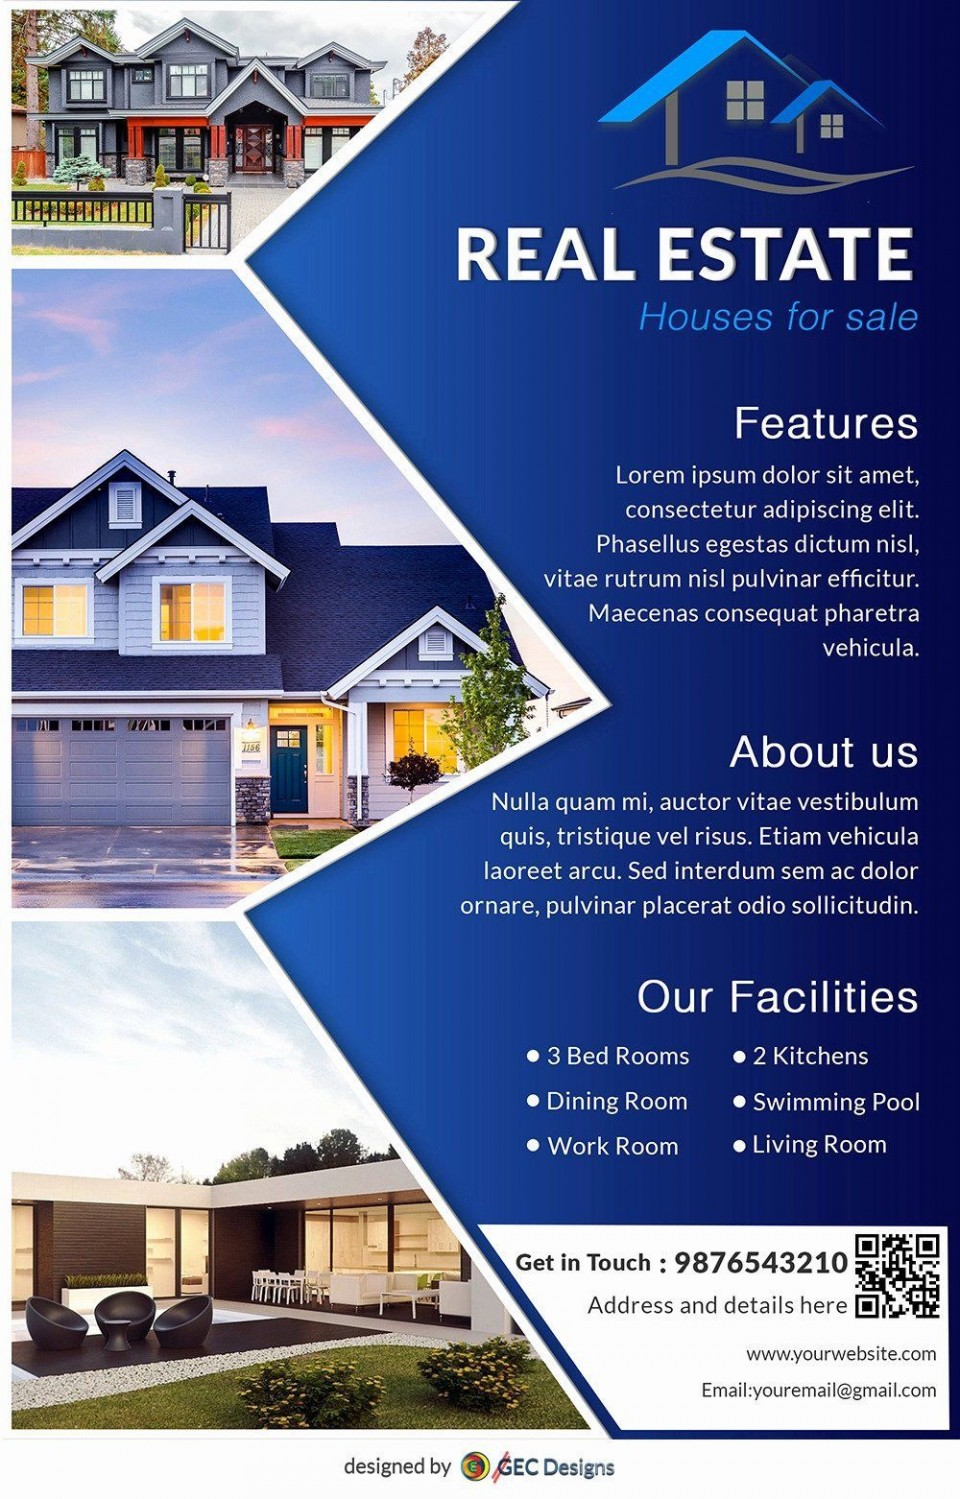 001 Top House For Sale Flyer Template Inspiration  Free Real Estate Example By Owner960